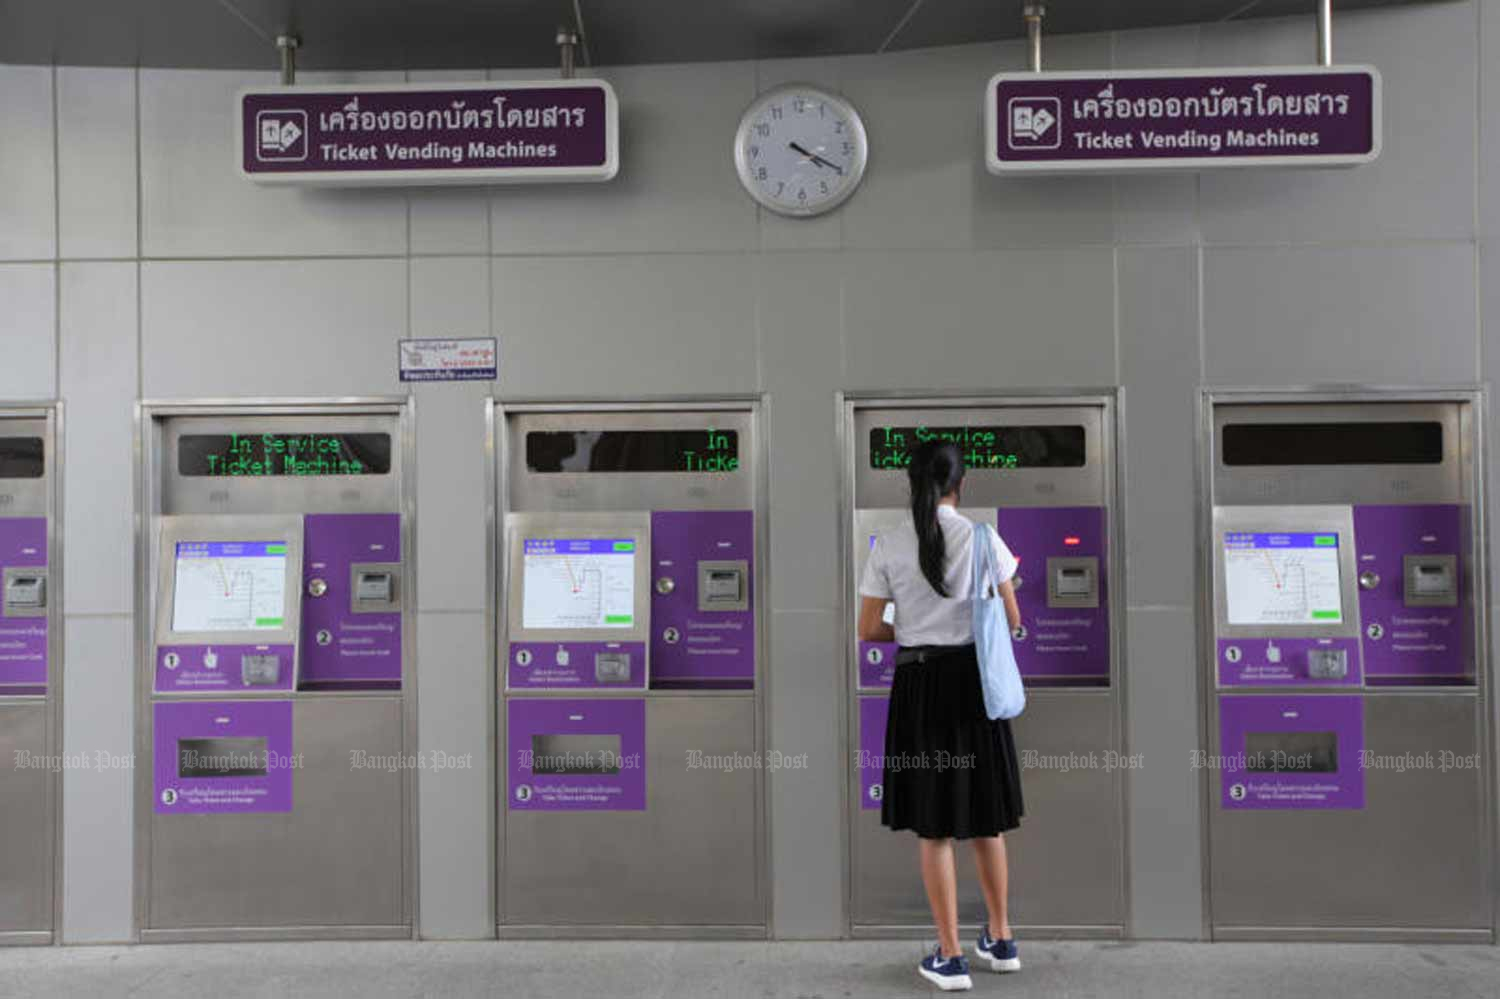 A commuter buys a ticket on the Purple Line electric railway in Bangkok. (File photo by Wichan Charoenkiatpakul)